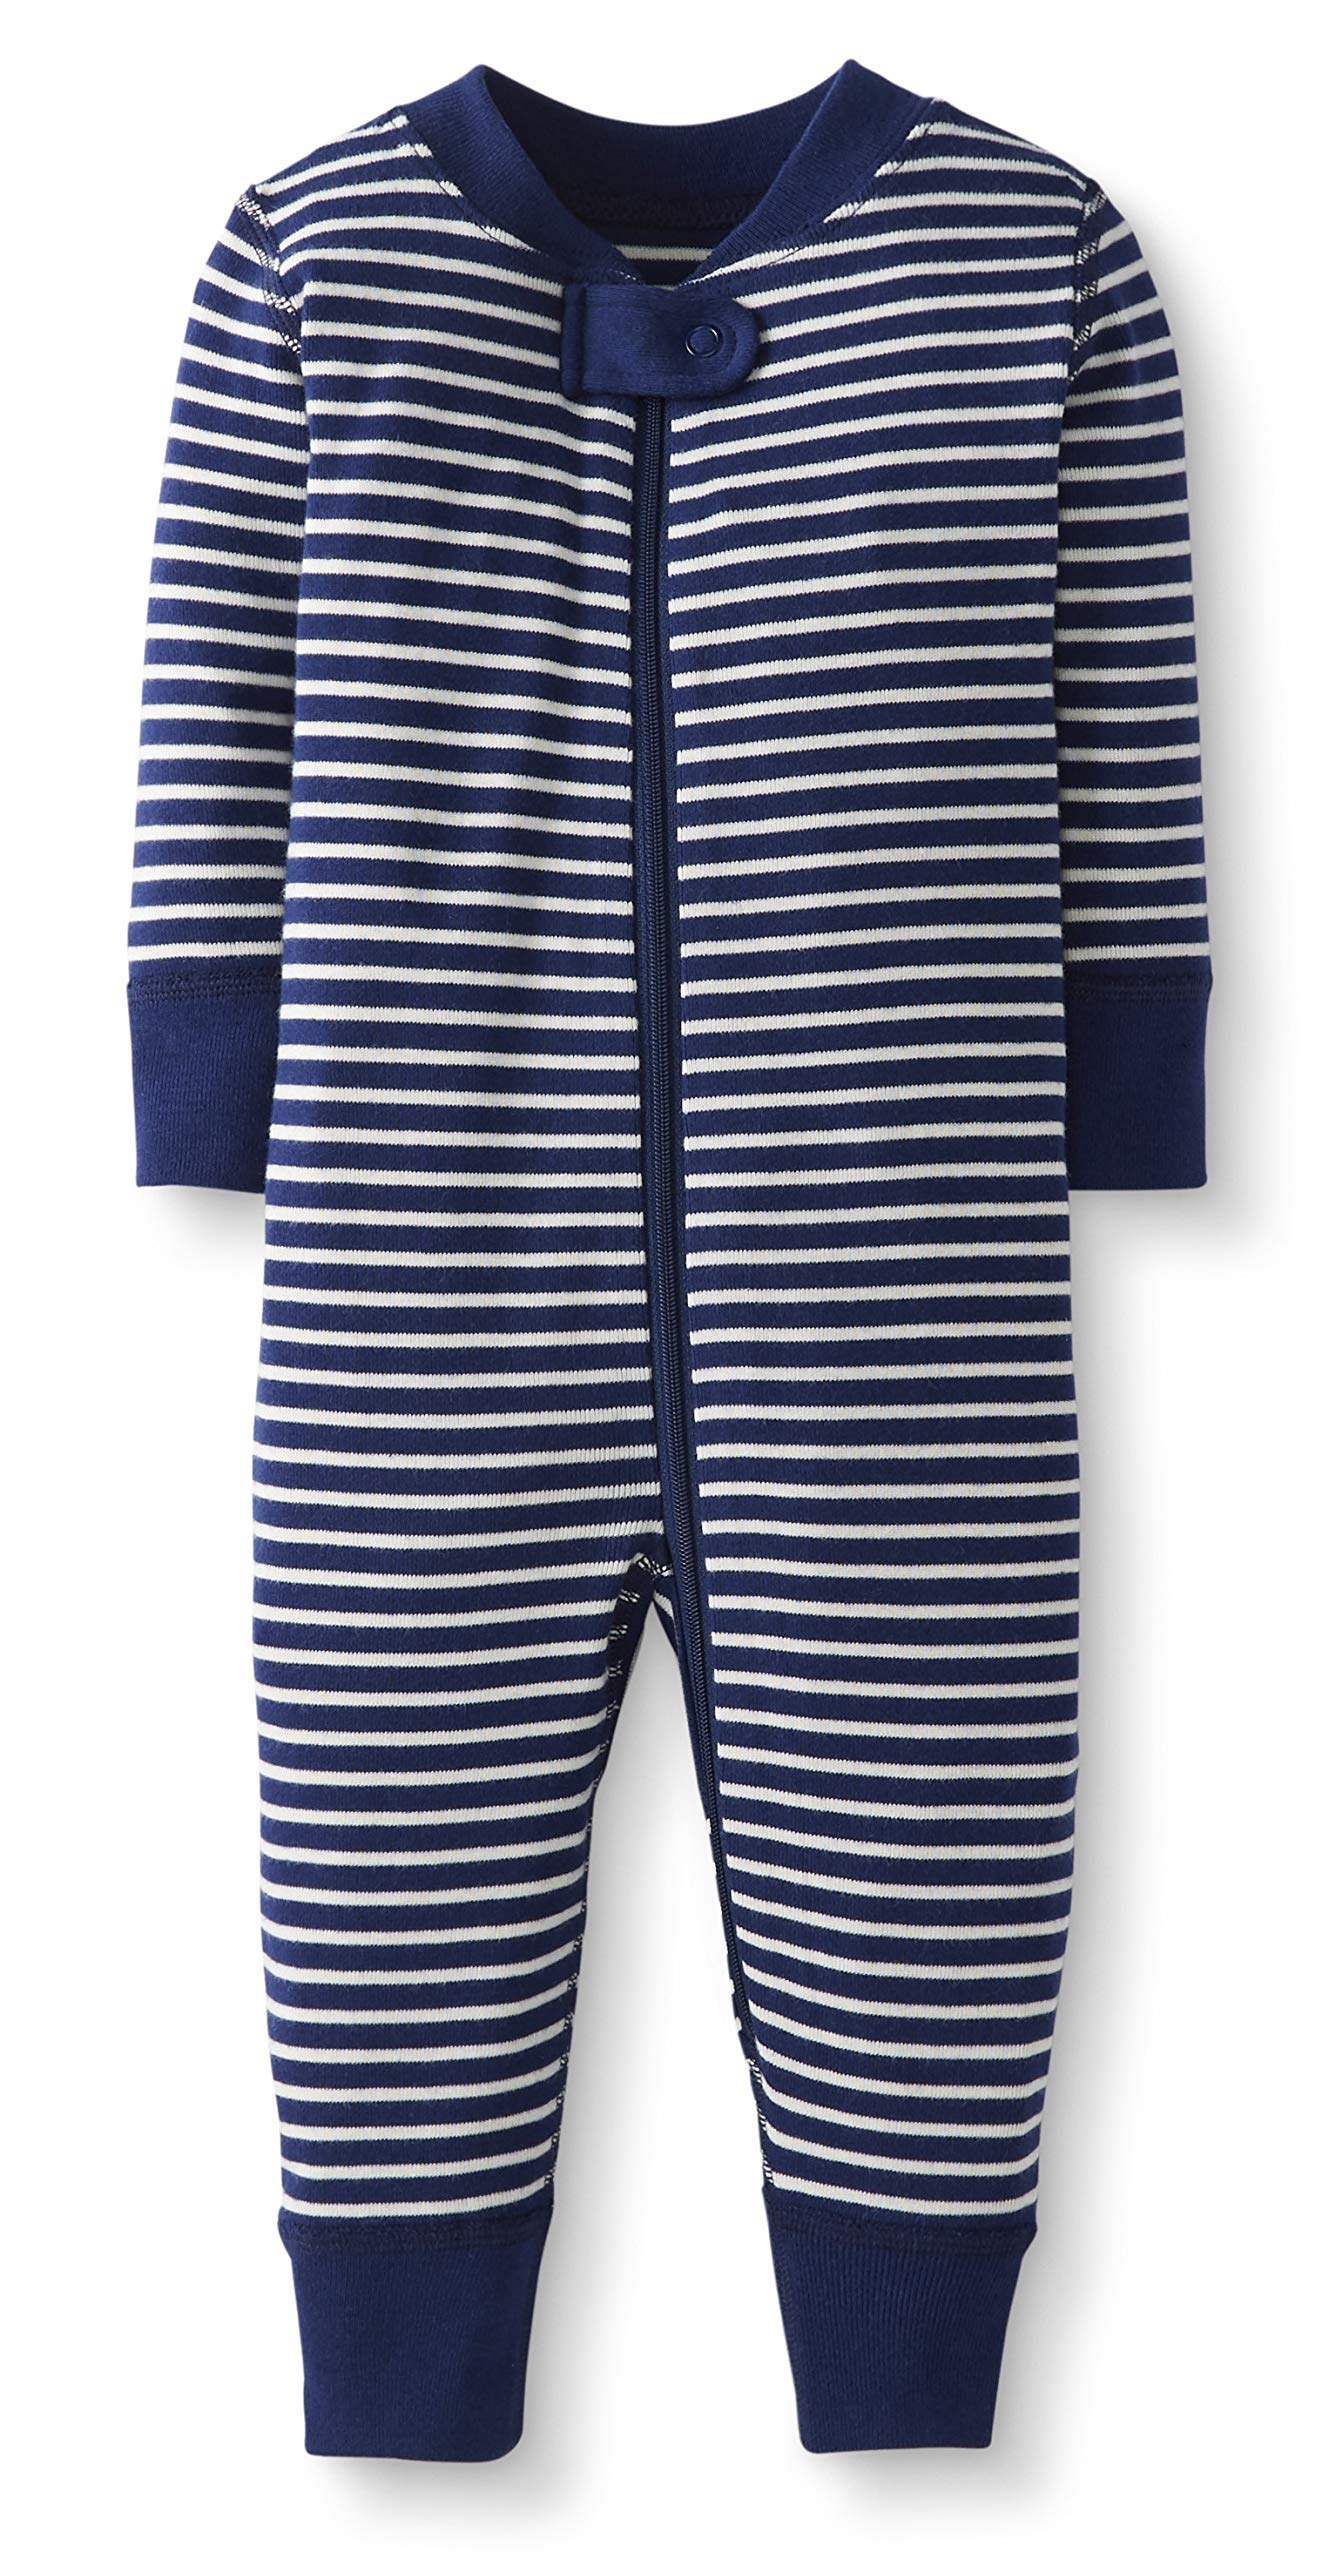 0-3 months Moon and Back by Hanna Andersson Baby 2-Pack Organic Sleeper Gown Blue